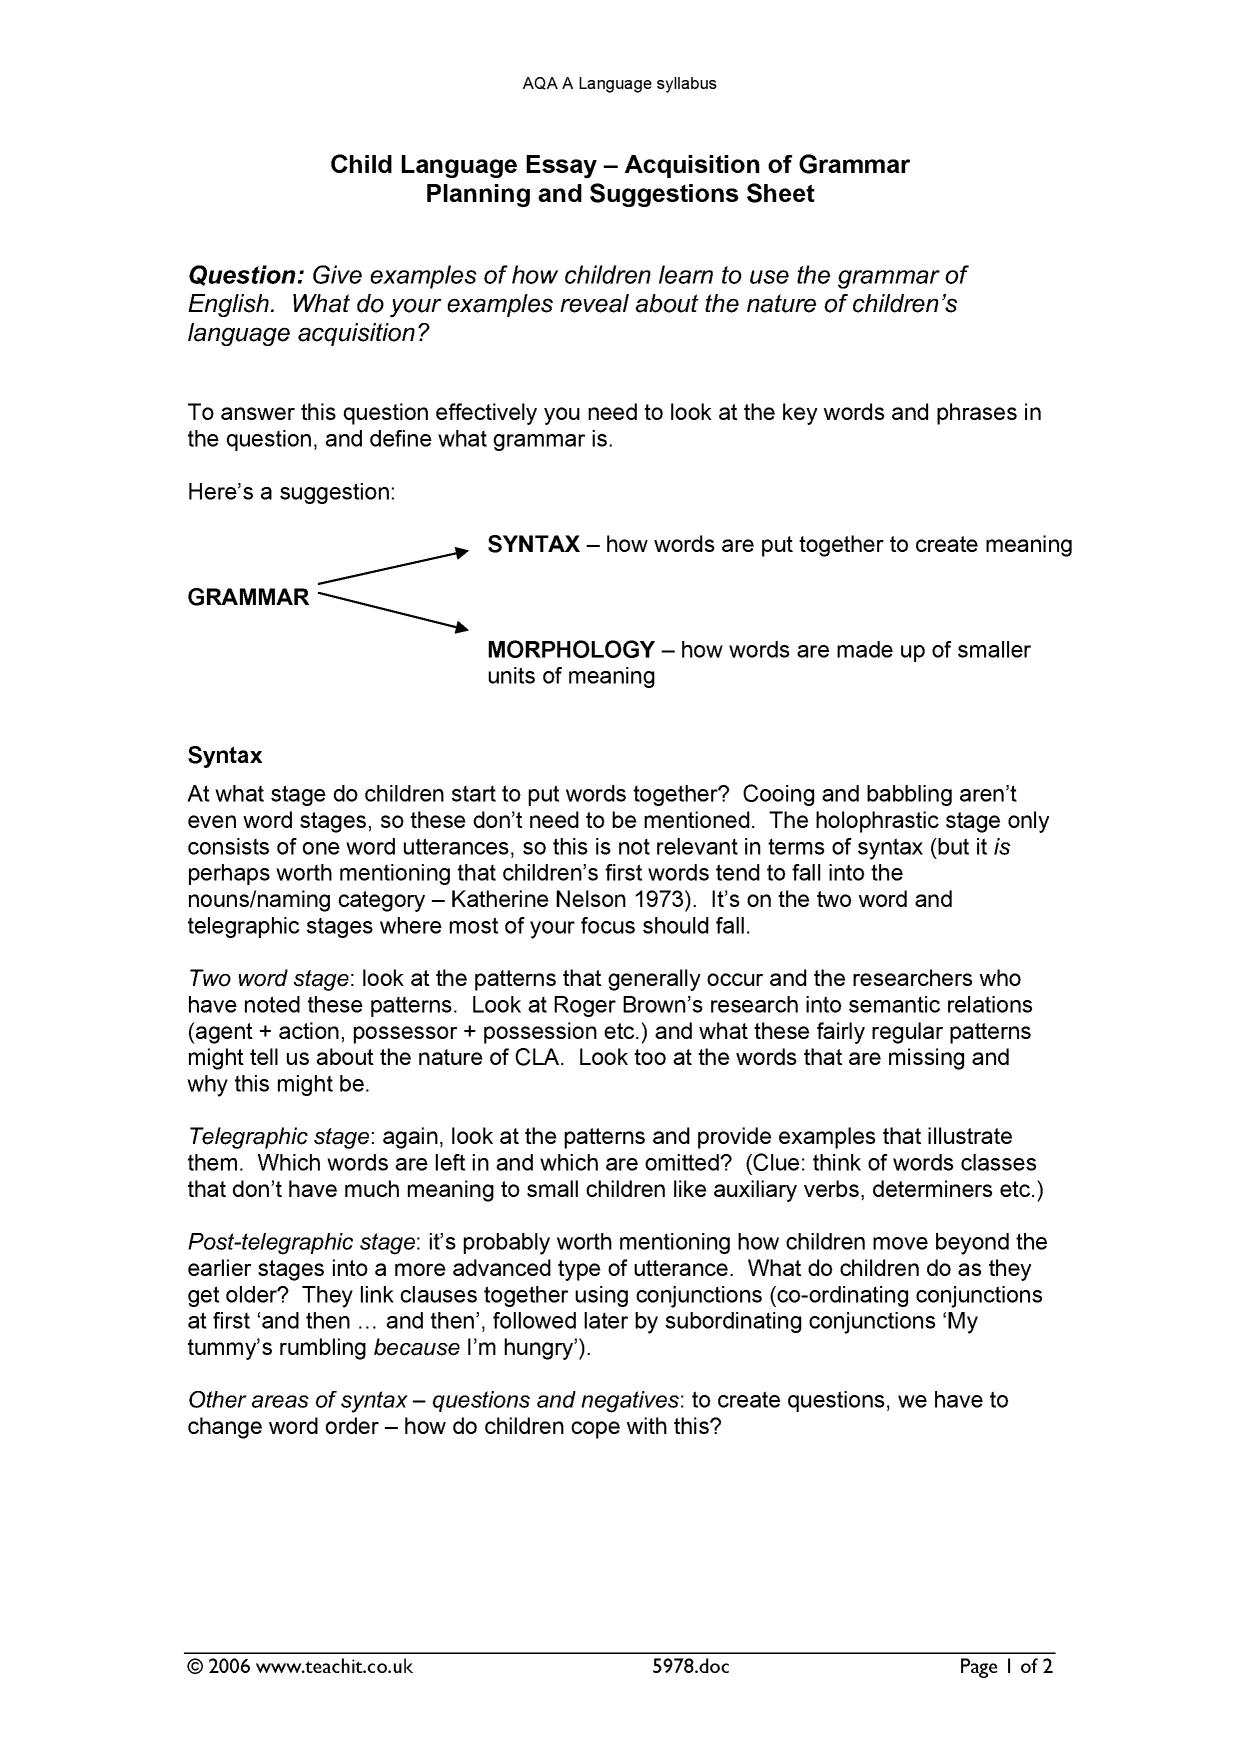 What Is A Thesis For An Essay Child Language Grammar  Essay Planning And Suggestions Sheet For Aqa A Accounting Assignment Help Australia also Thesis For Compare Contrast Essay Child Language Grammar  Essay Planning And Suggestions Sheet For  Essay About Health